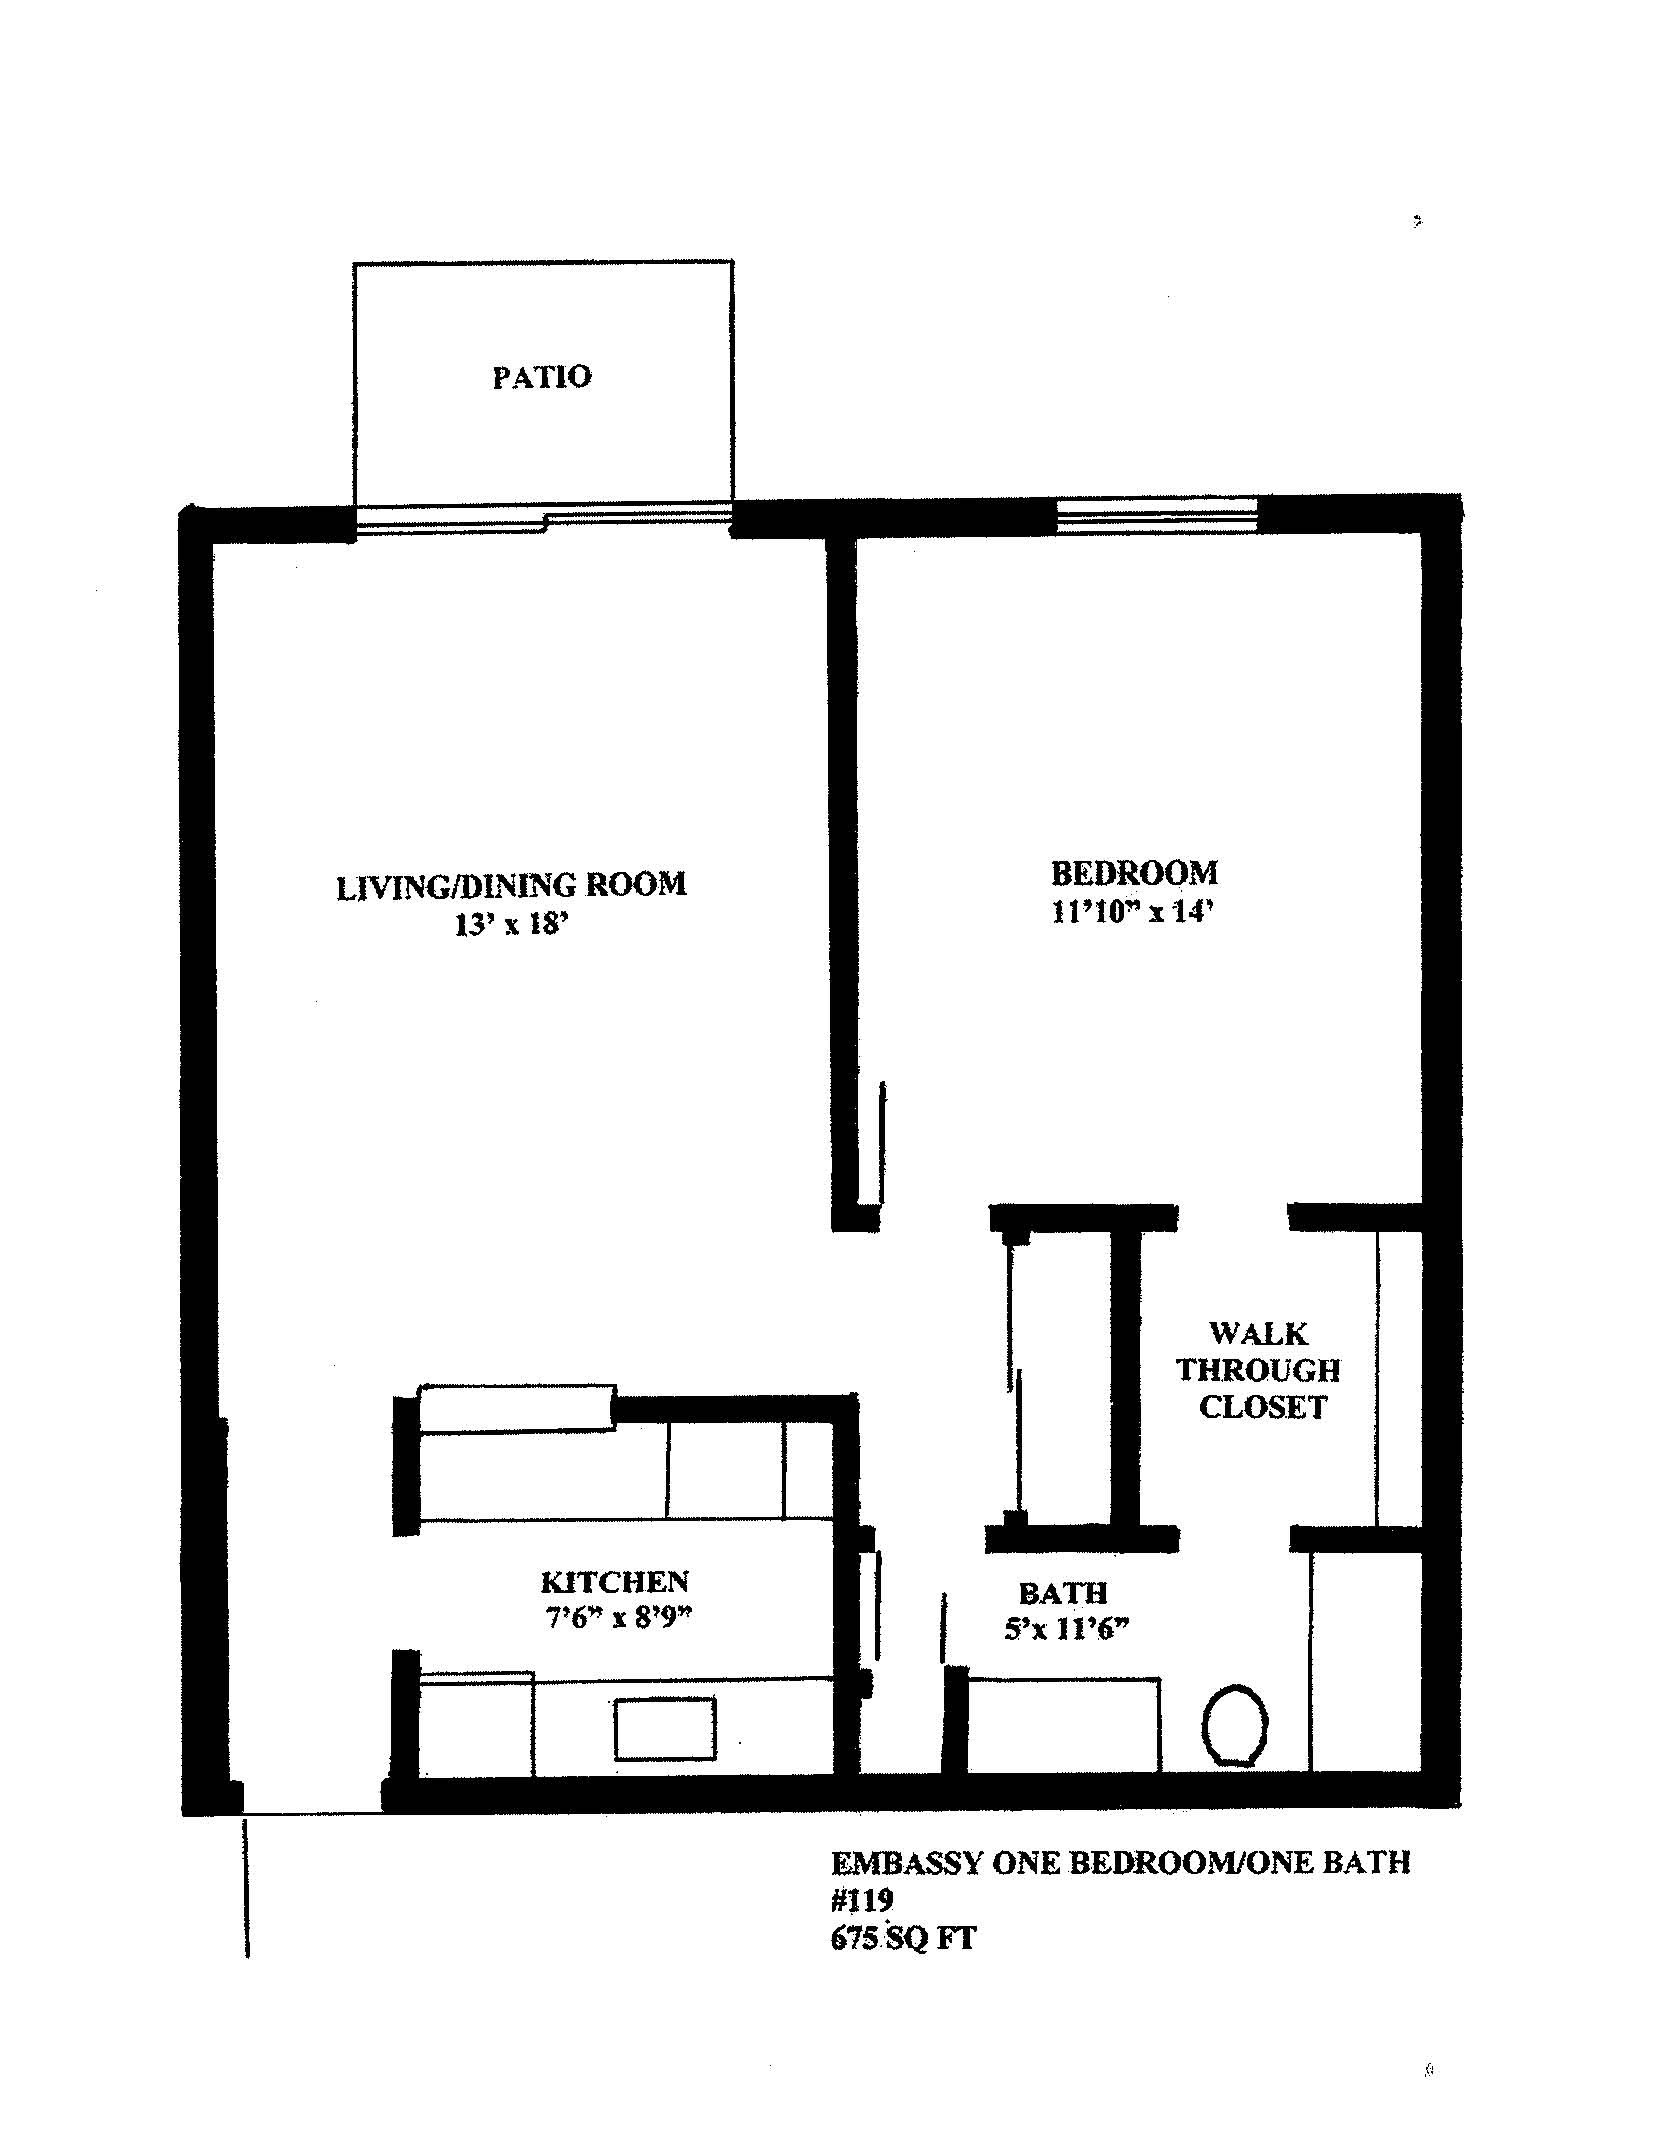 Floorplan - EMBASSY 1C-  Located at Embassy Apartment image